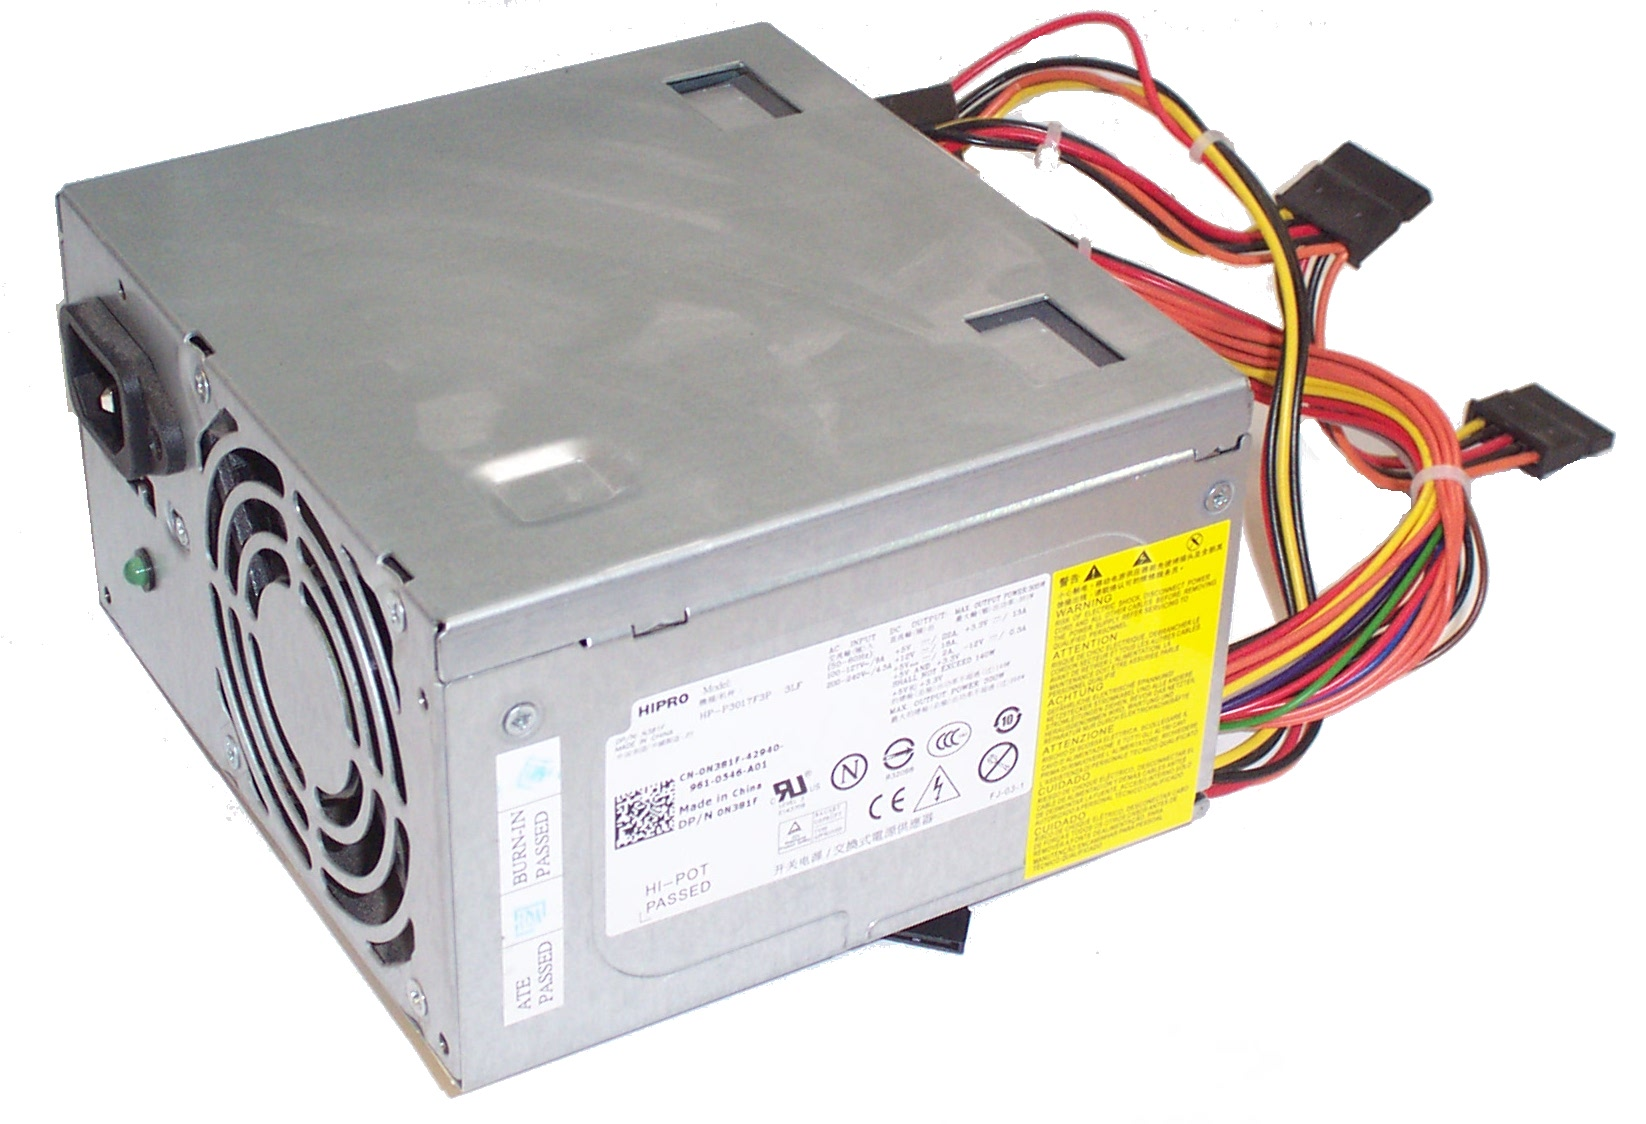 Dell N381F HP-P3017F3P 305W 24-Pin ATX Power Supply